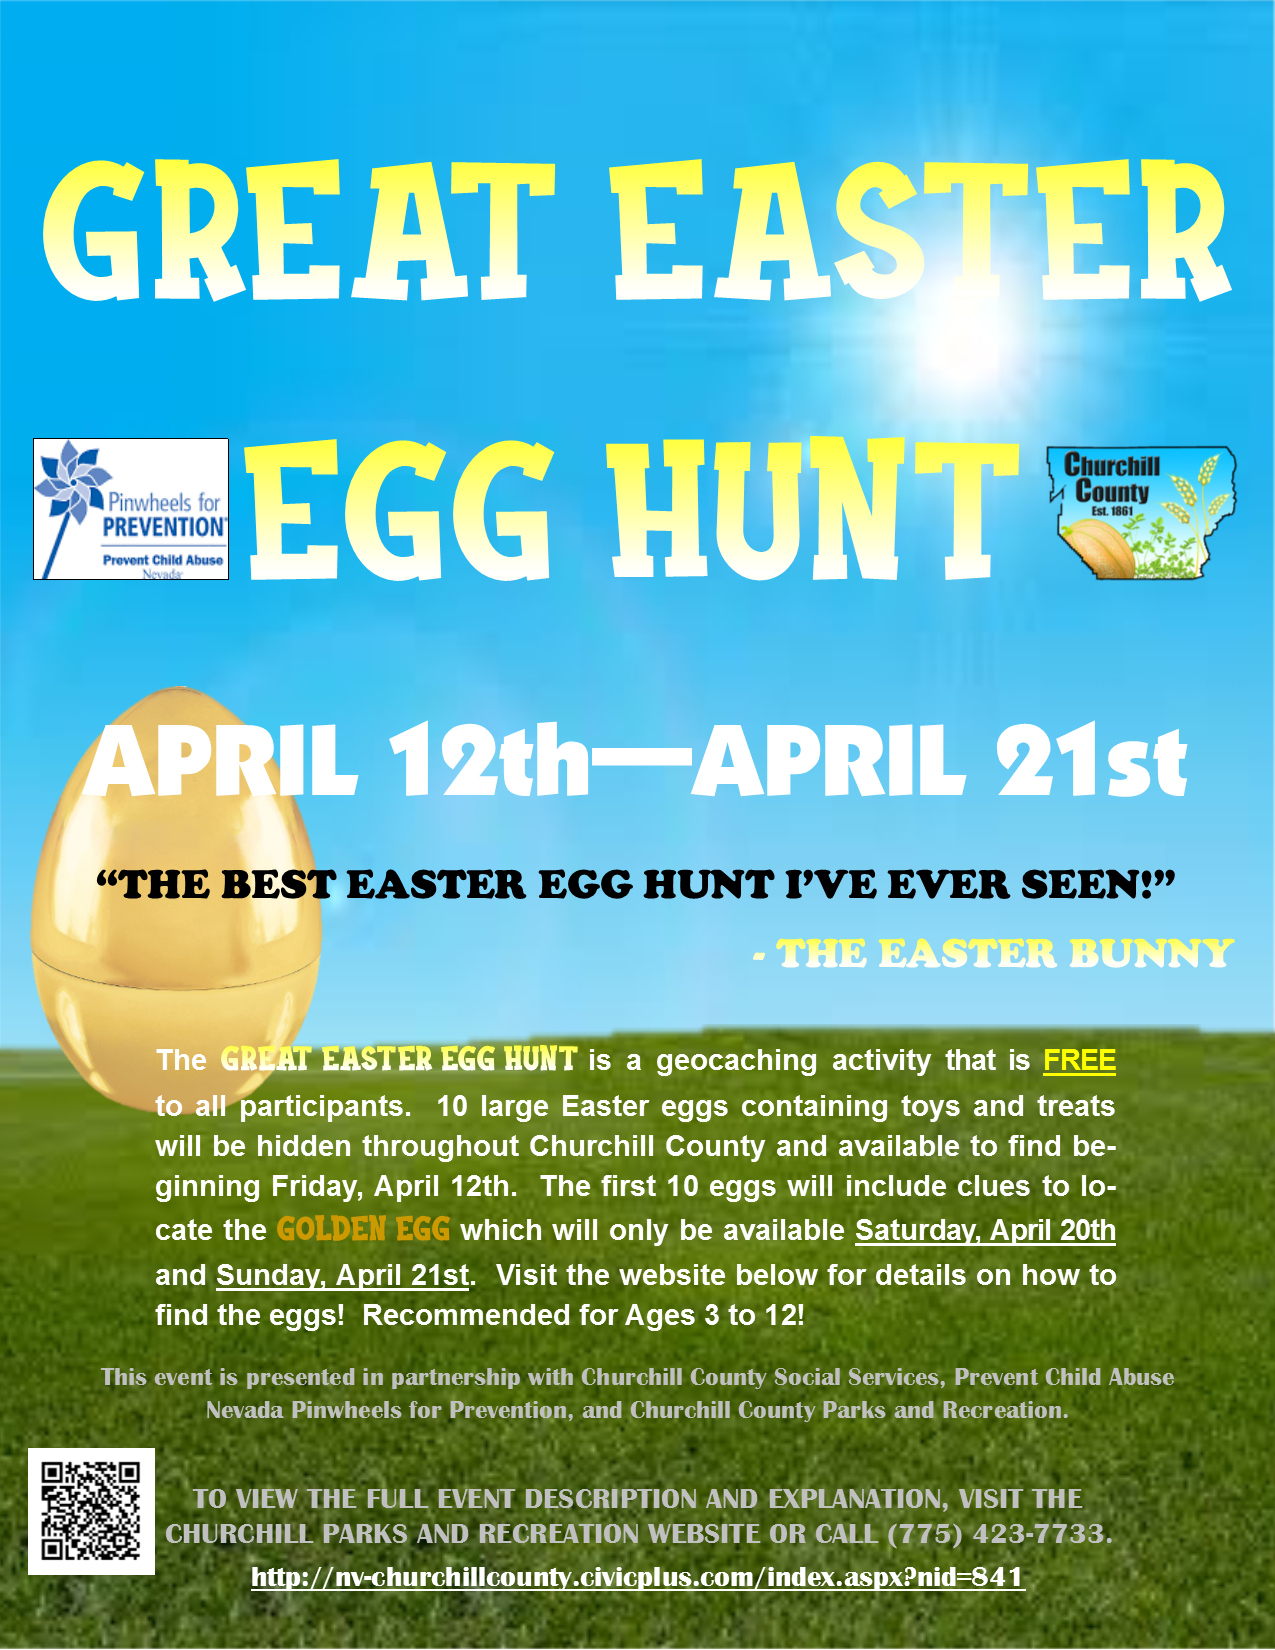 The Great Easter Egg Hunt Flyer